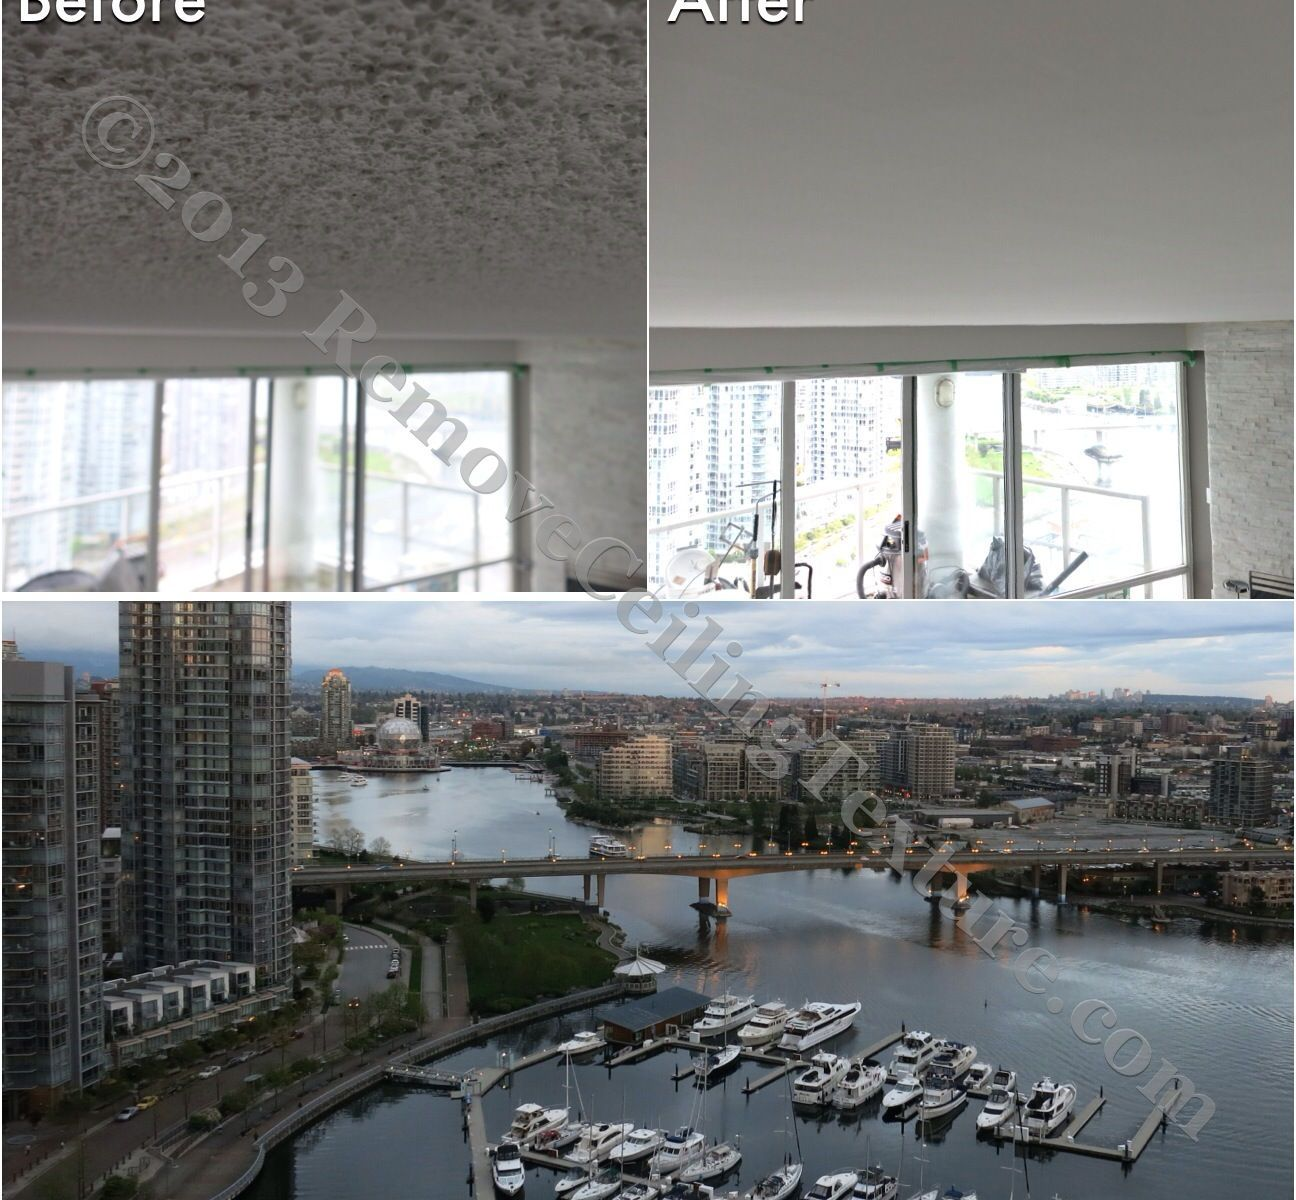 The ugly ceiling texture is removed and no longer competes with the million dollar view of False Creek